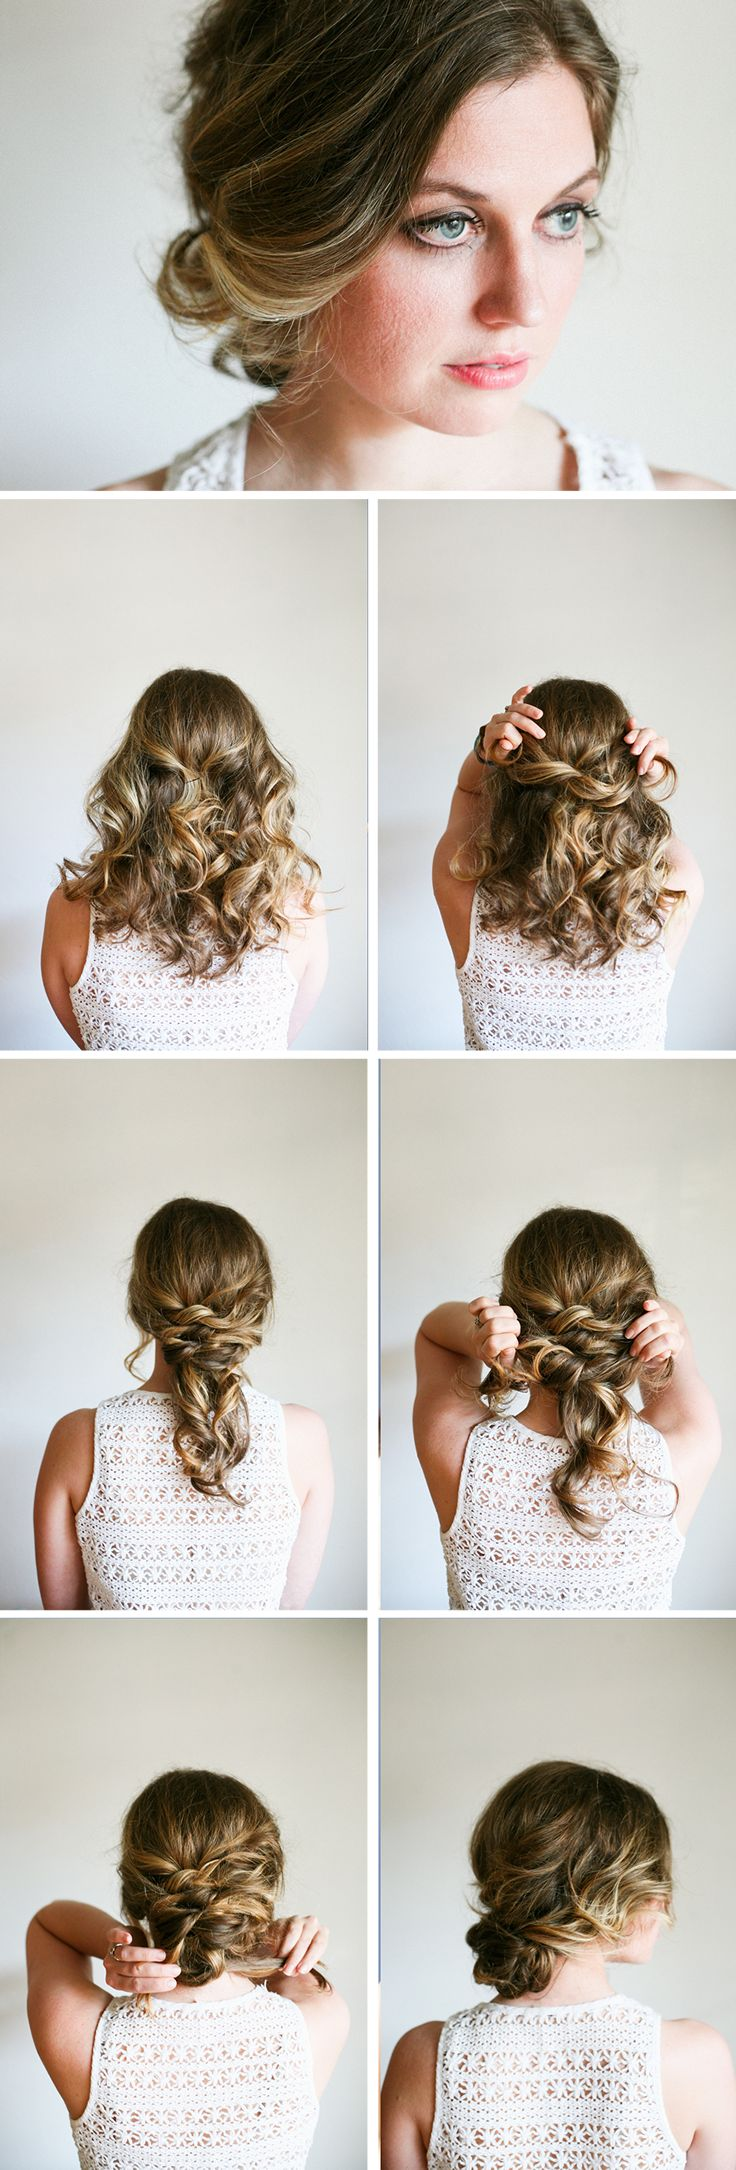 Swell 1000 Images About Braids Buns And Fun Ways To Put Your Hair Up Short Hairstyles Gunalazisus